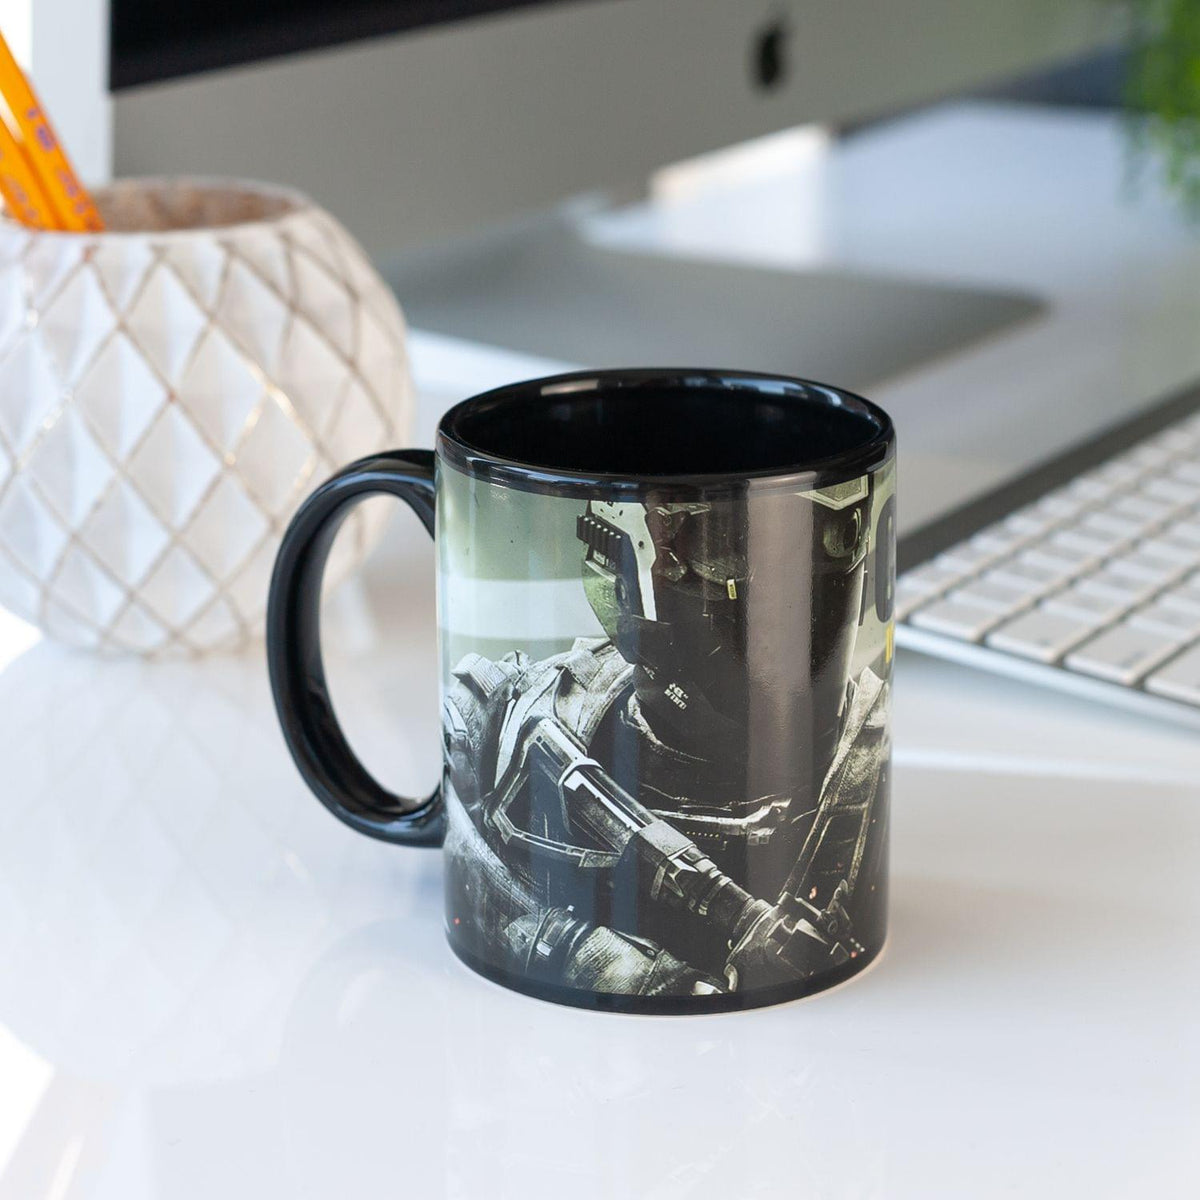 Call of Duty Costume | Call of Duty Infinite Warfare Ceramic Coffee Mug